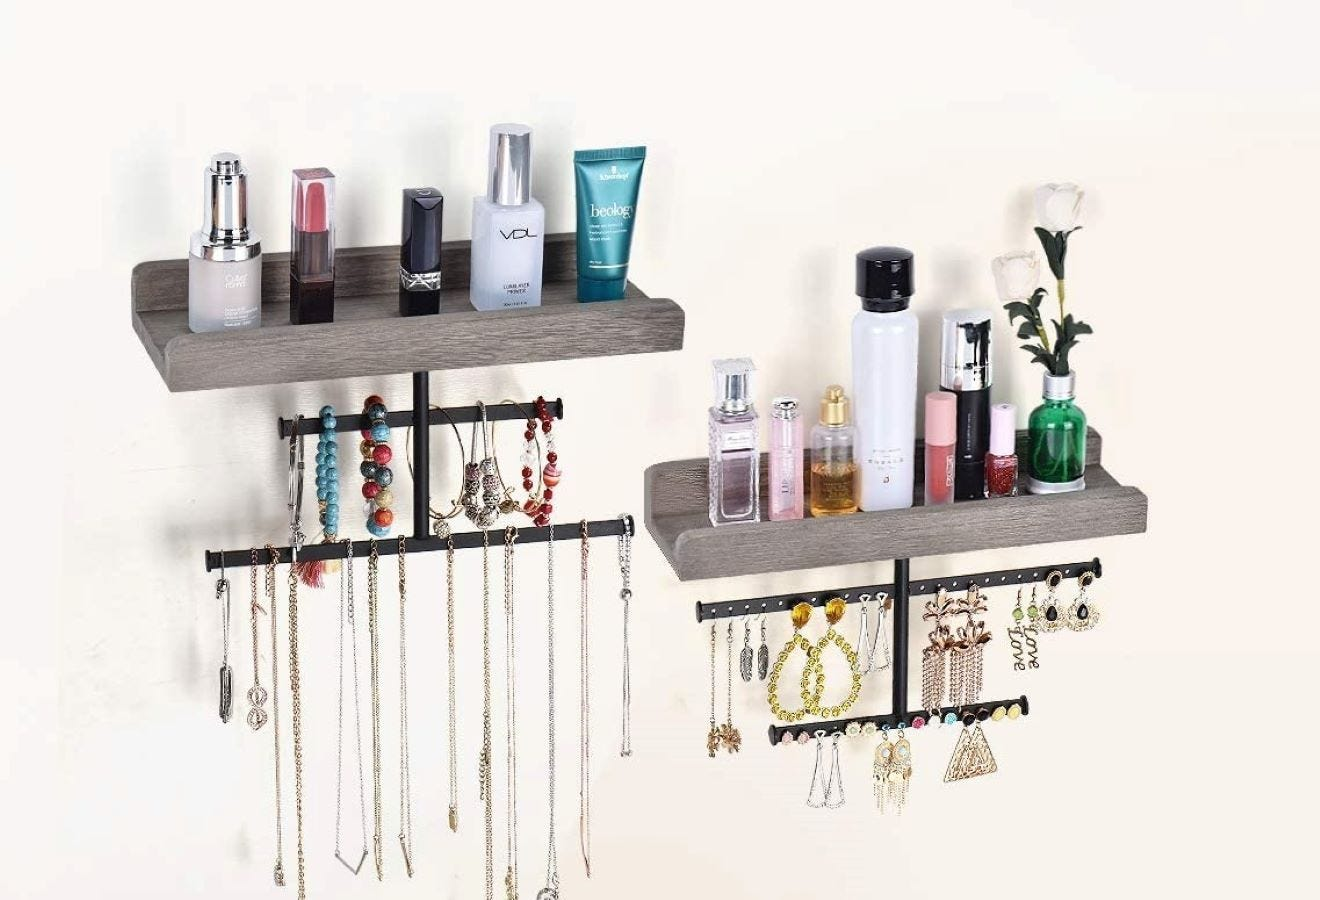 The Hanging Wall Mounted Jewelry Organizer in weathered gray.